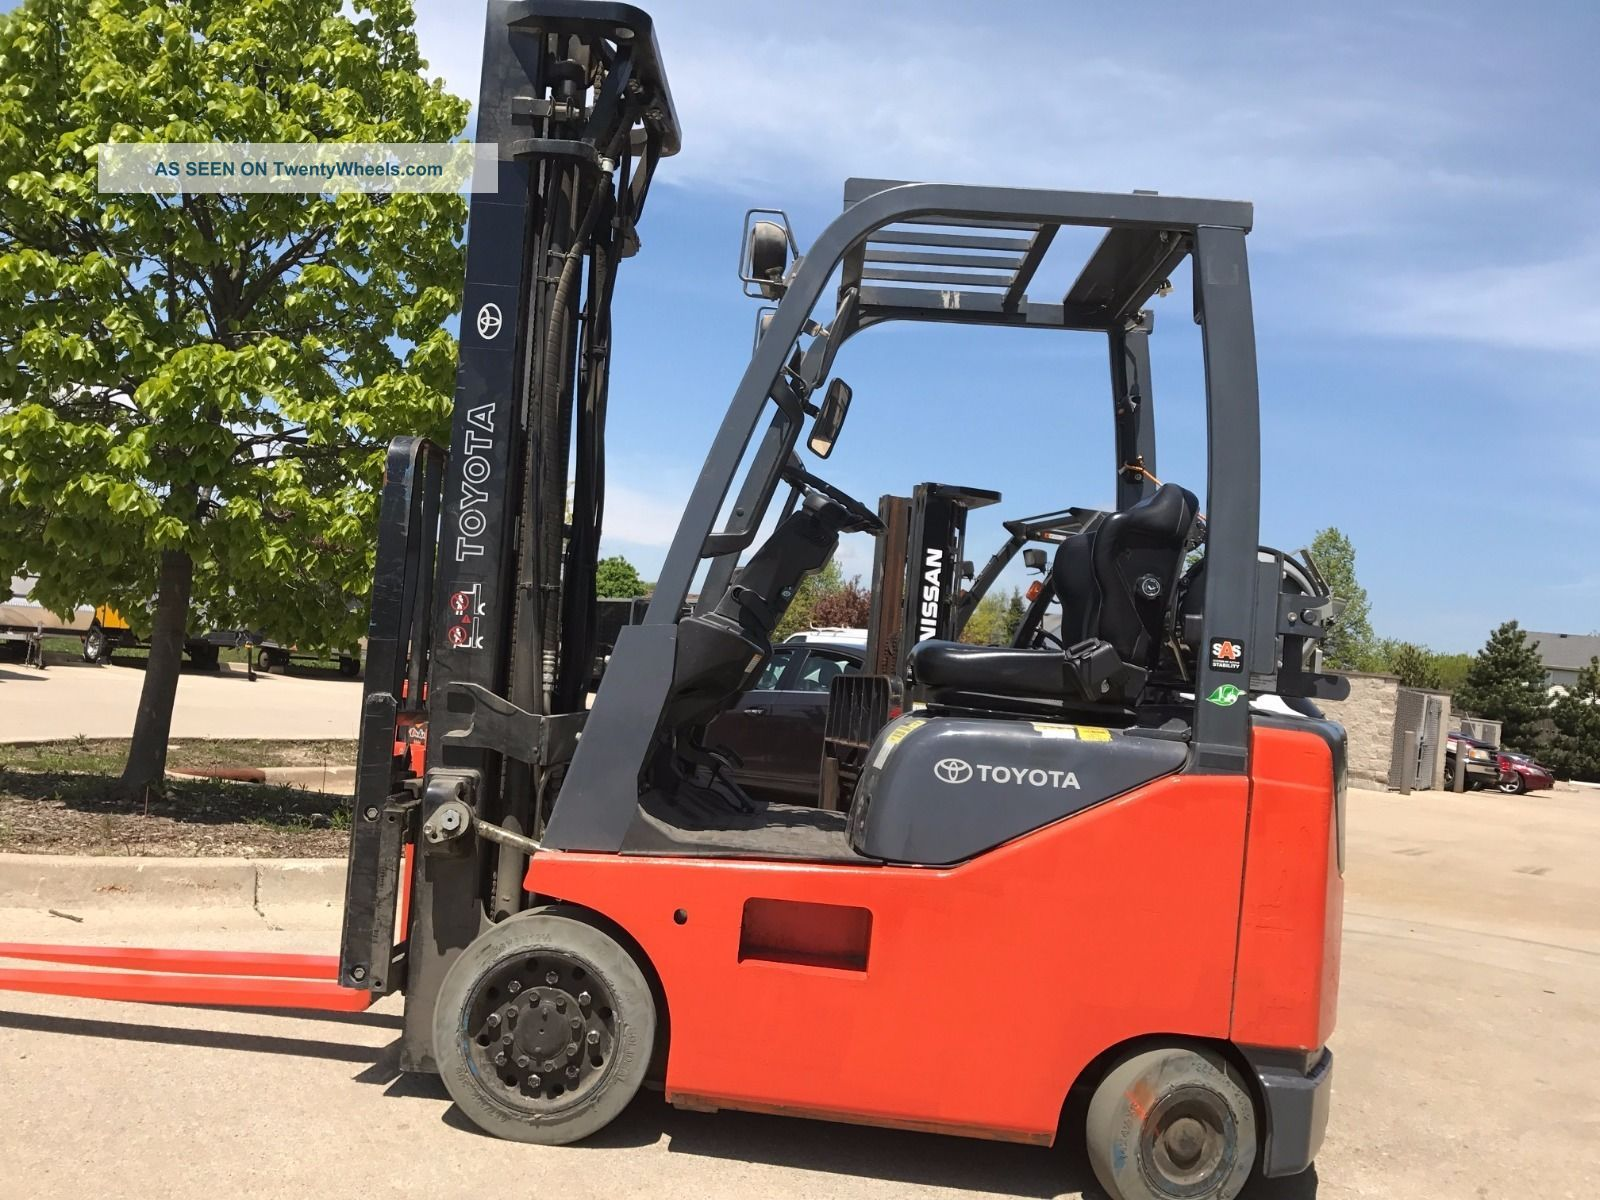 2014 Toyota Lpg  Propane Forklift - - We Will Ship Lifts 18 Feet